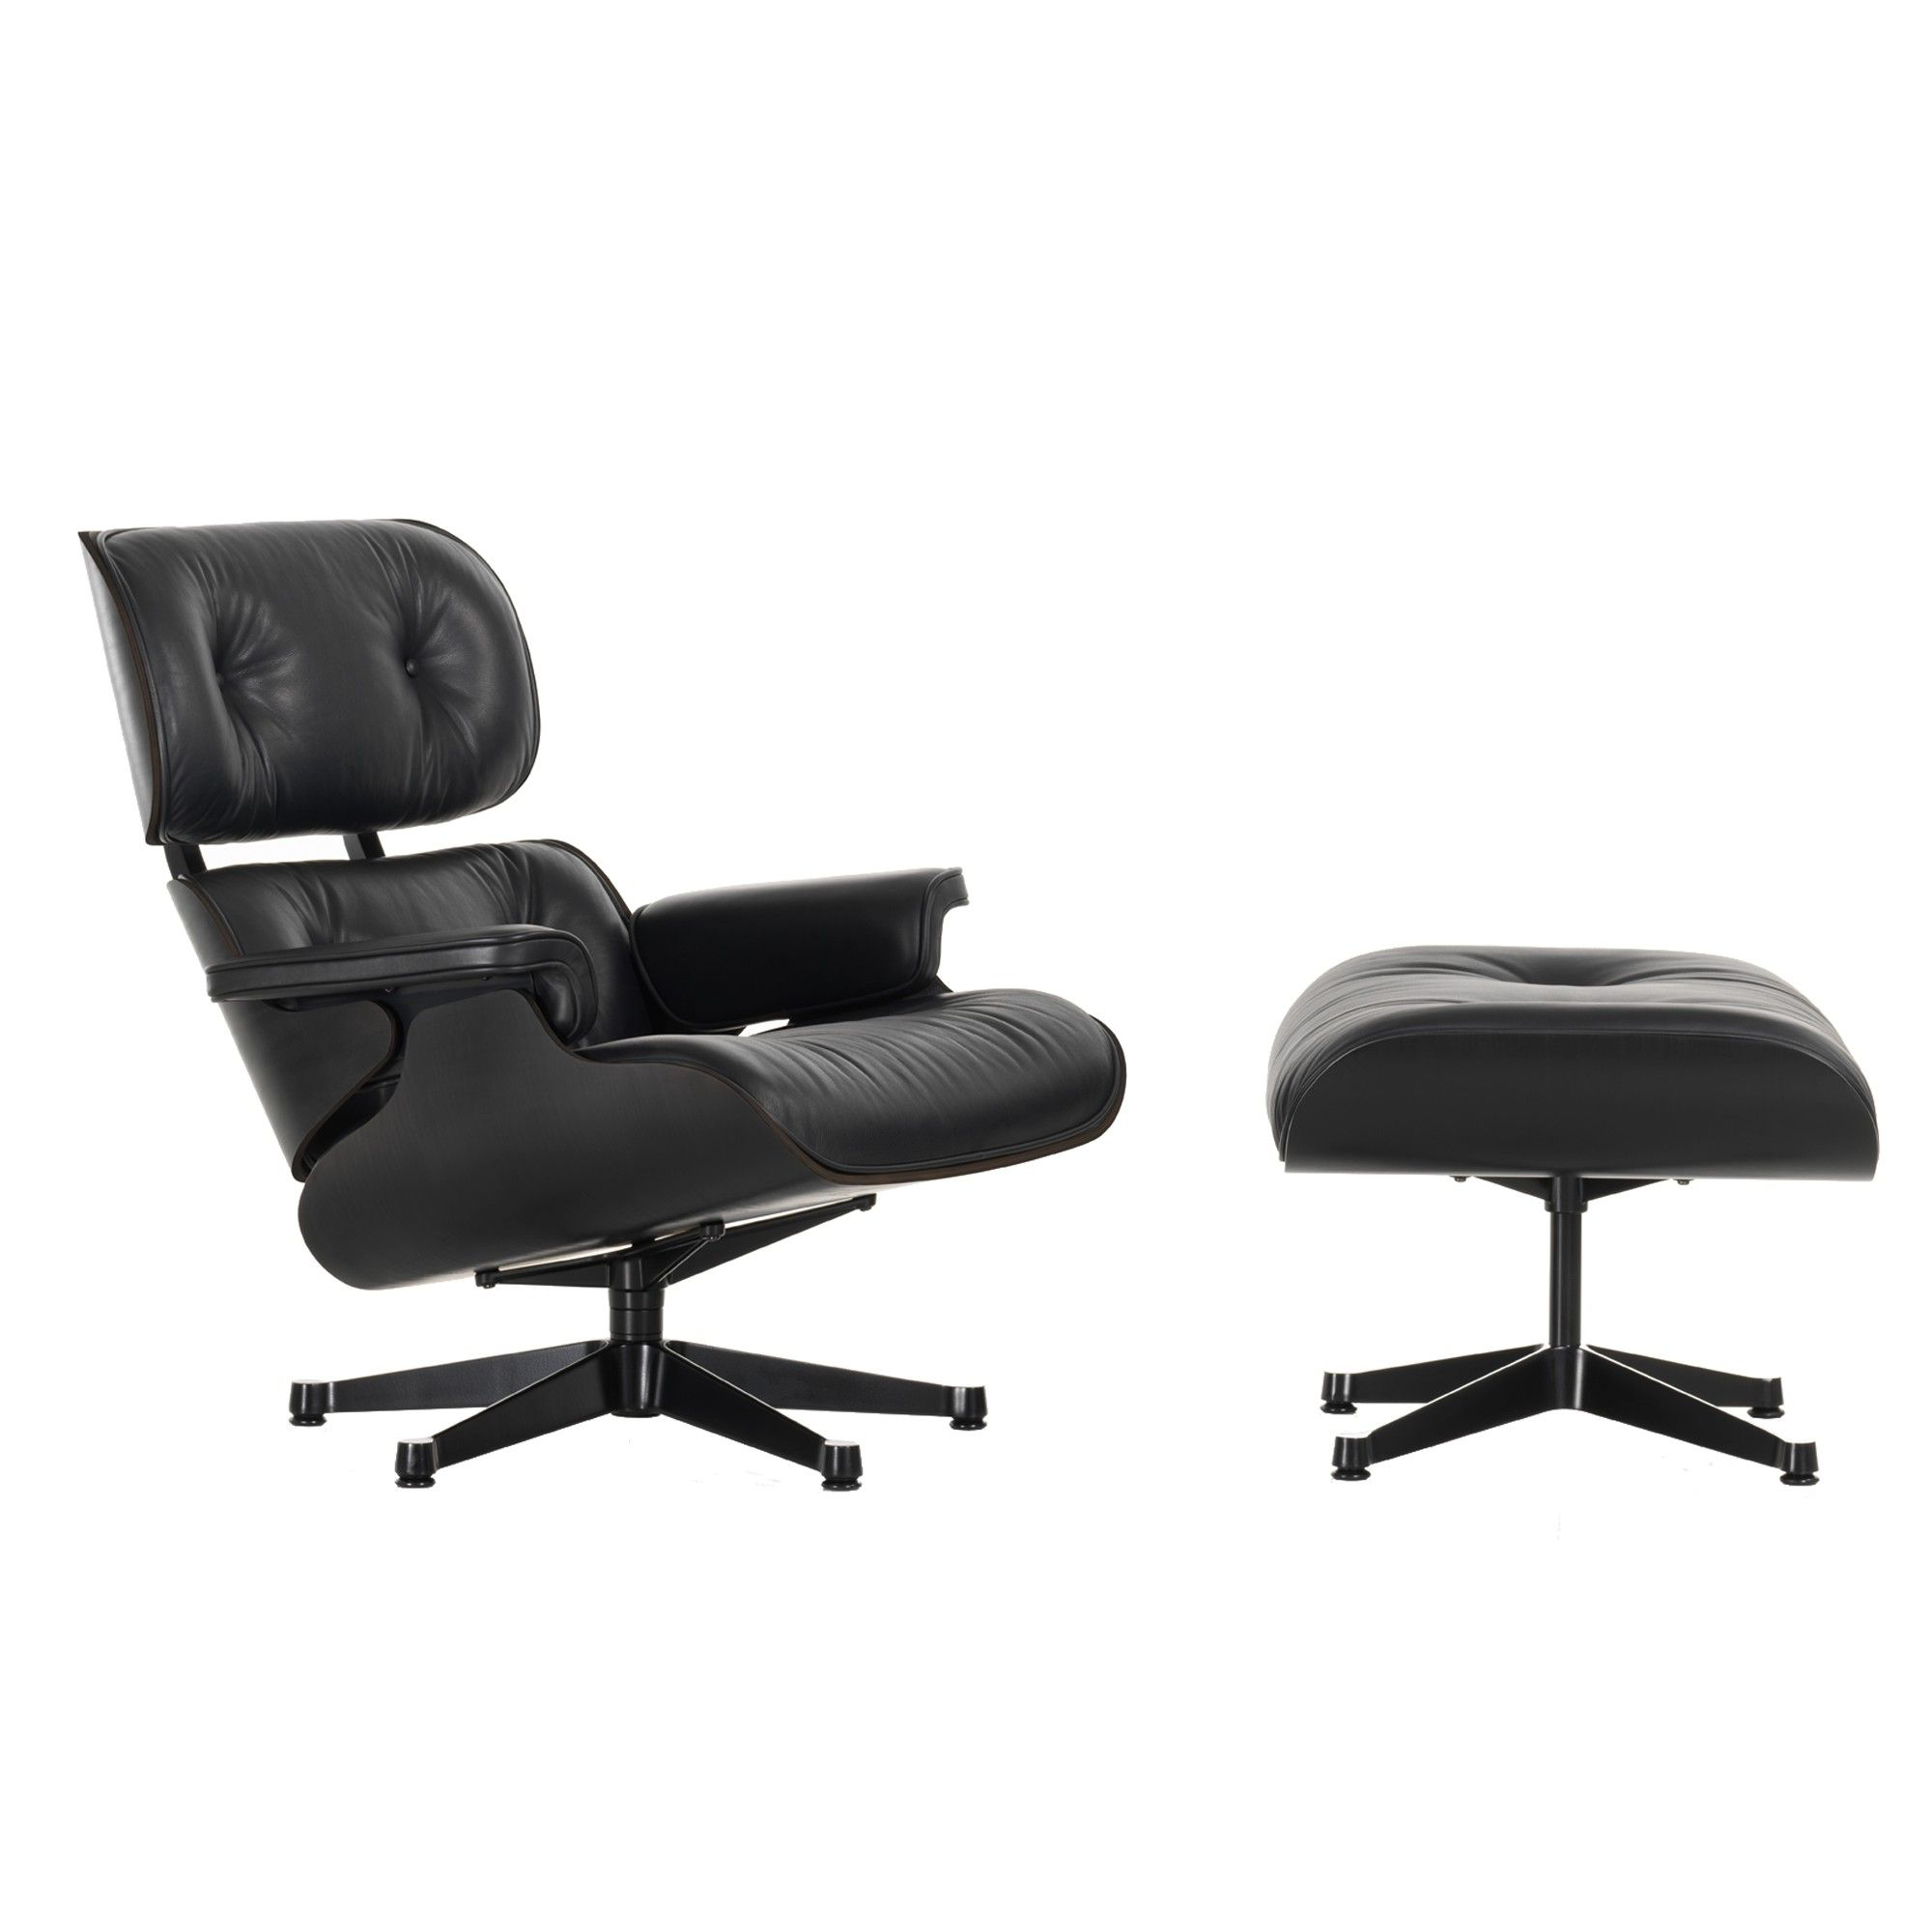 Eames Lounge Chair Ottoman All Black The Lounge Chair Is One Of The Most Famous Designs By Charles And Ray Eames Created Sessel Design Lounge Sessel Eames